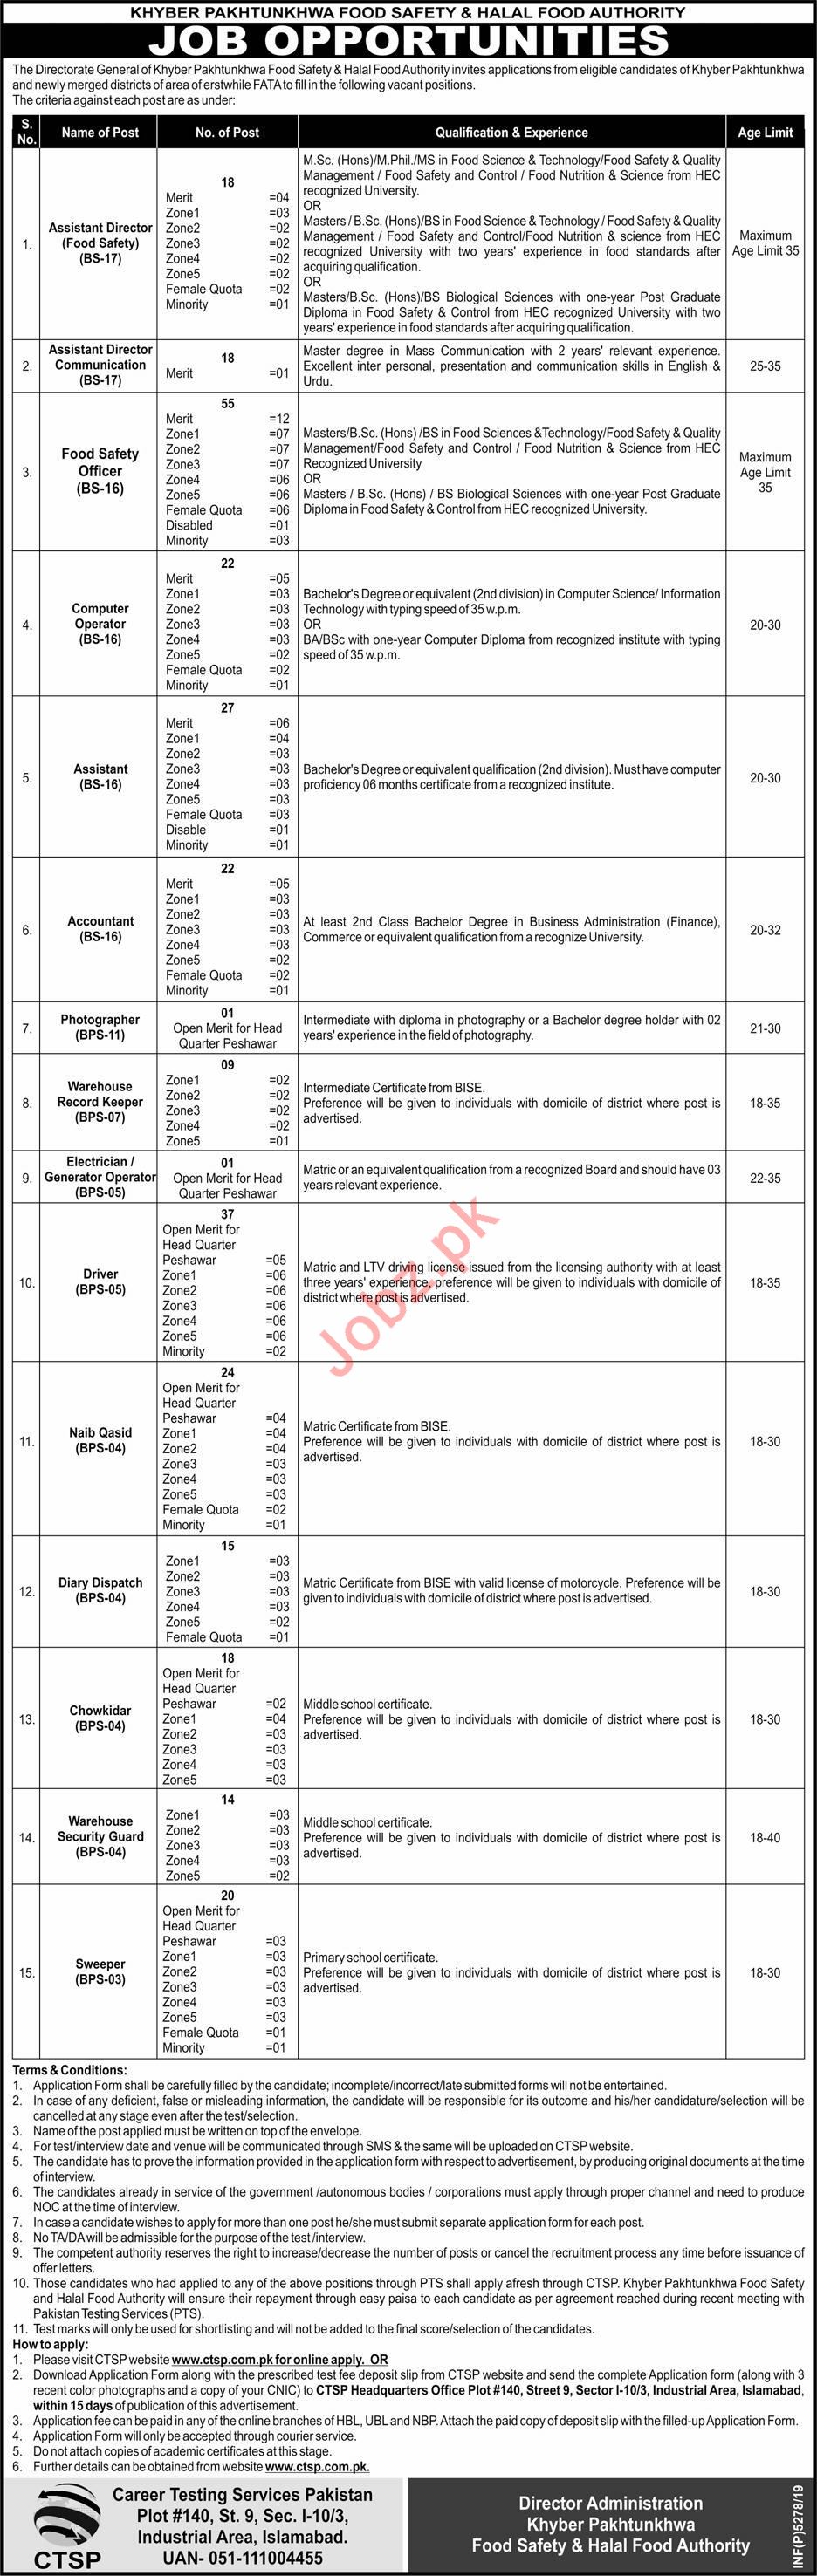 Management Jobs in KPK Food Safety & Halal Food Authority